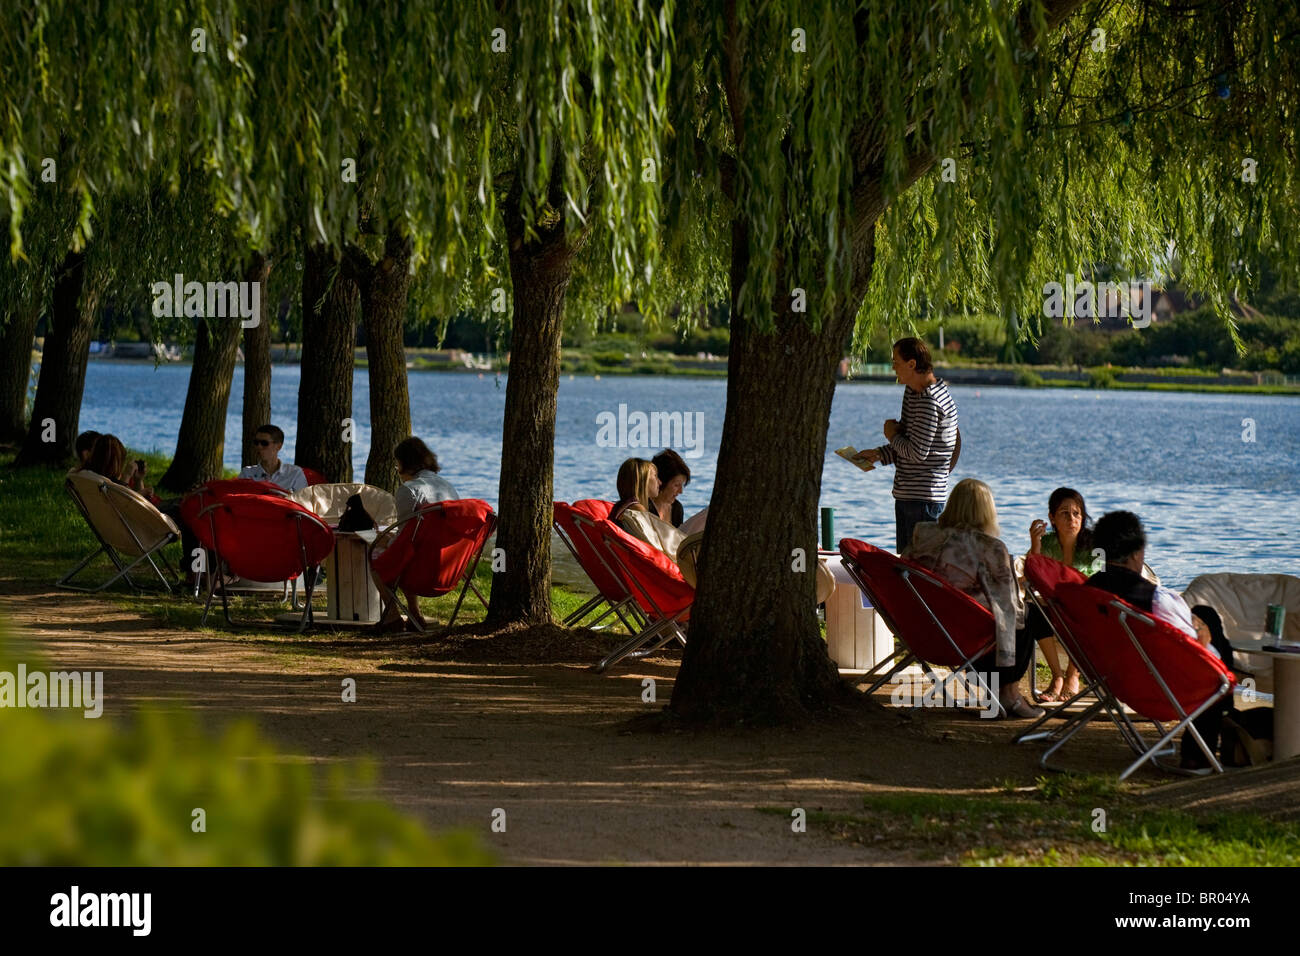 The terrace of a bar in the shade of weeping willows, at Vichy (France). Terrasse de bar à l'ombre de saules - Stock Image